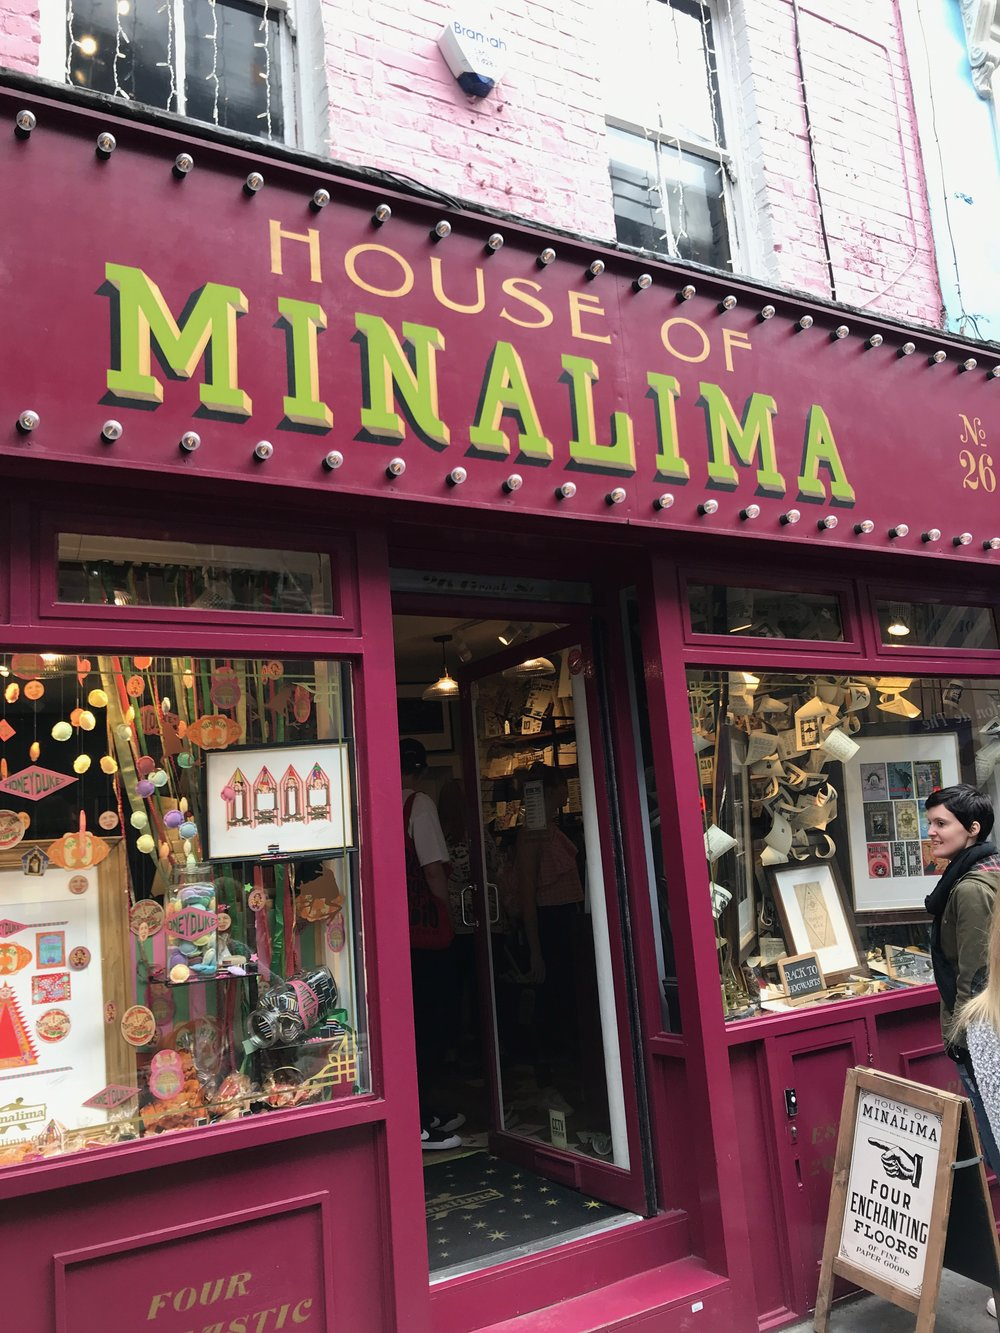 Visited the House of Minalima 2017, exhibition about the graphic design behind the Harry Potter films